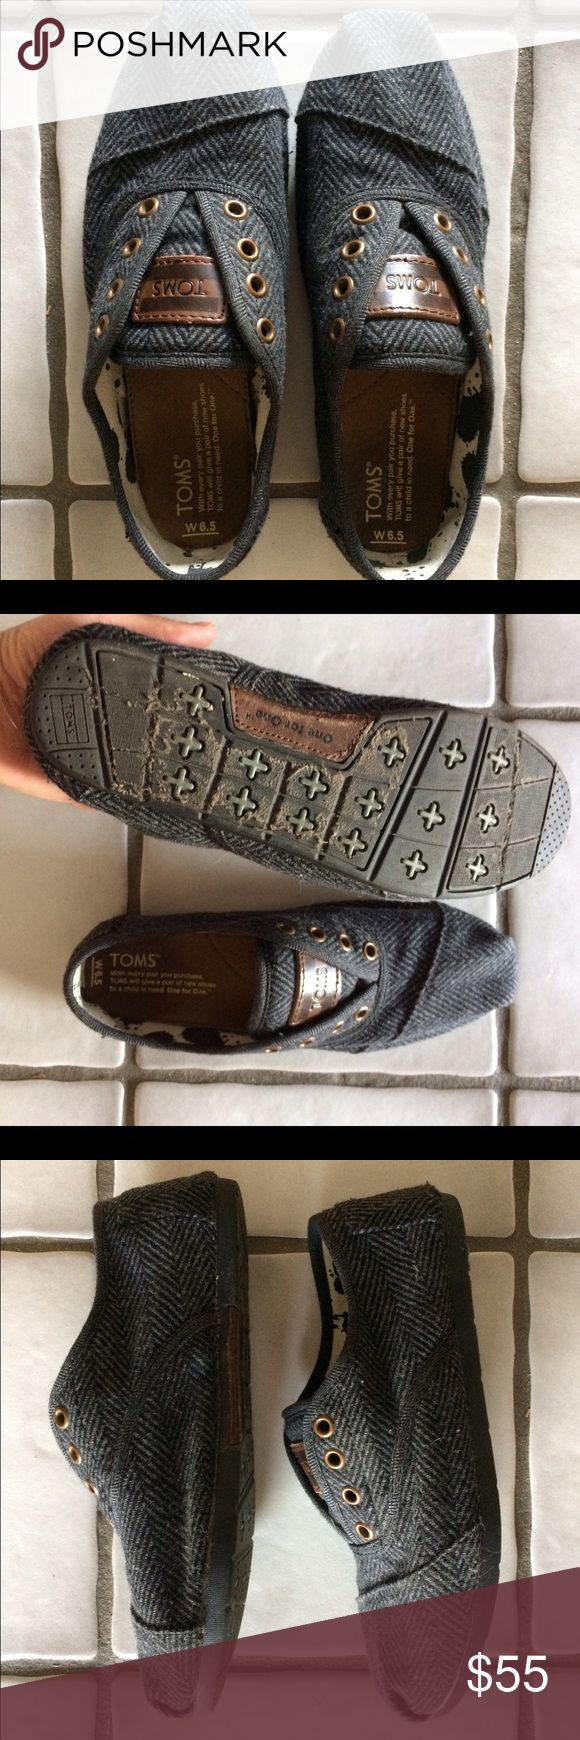 TOMS Cordones, Size 6.5 Lightly worn light/dark grey TOMS Cordones. Looking for a new owner to out-use them! I've worn all of my other TOMS til death but these aren't my style anymore. Hoping someone else will put them to good use. ☺️ TOMS Shoes Sneakers